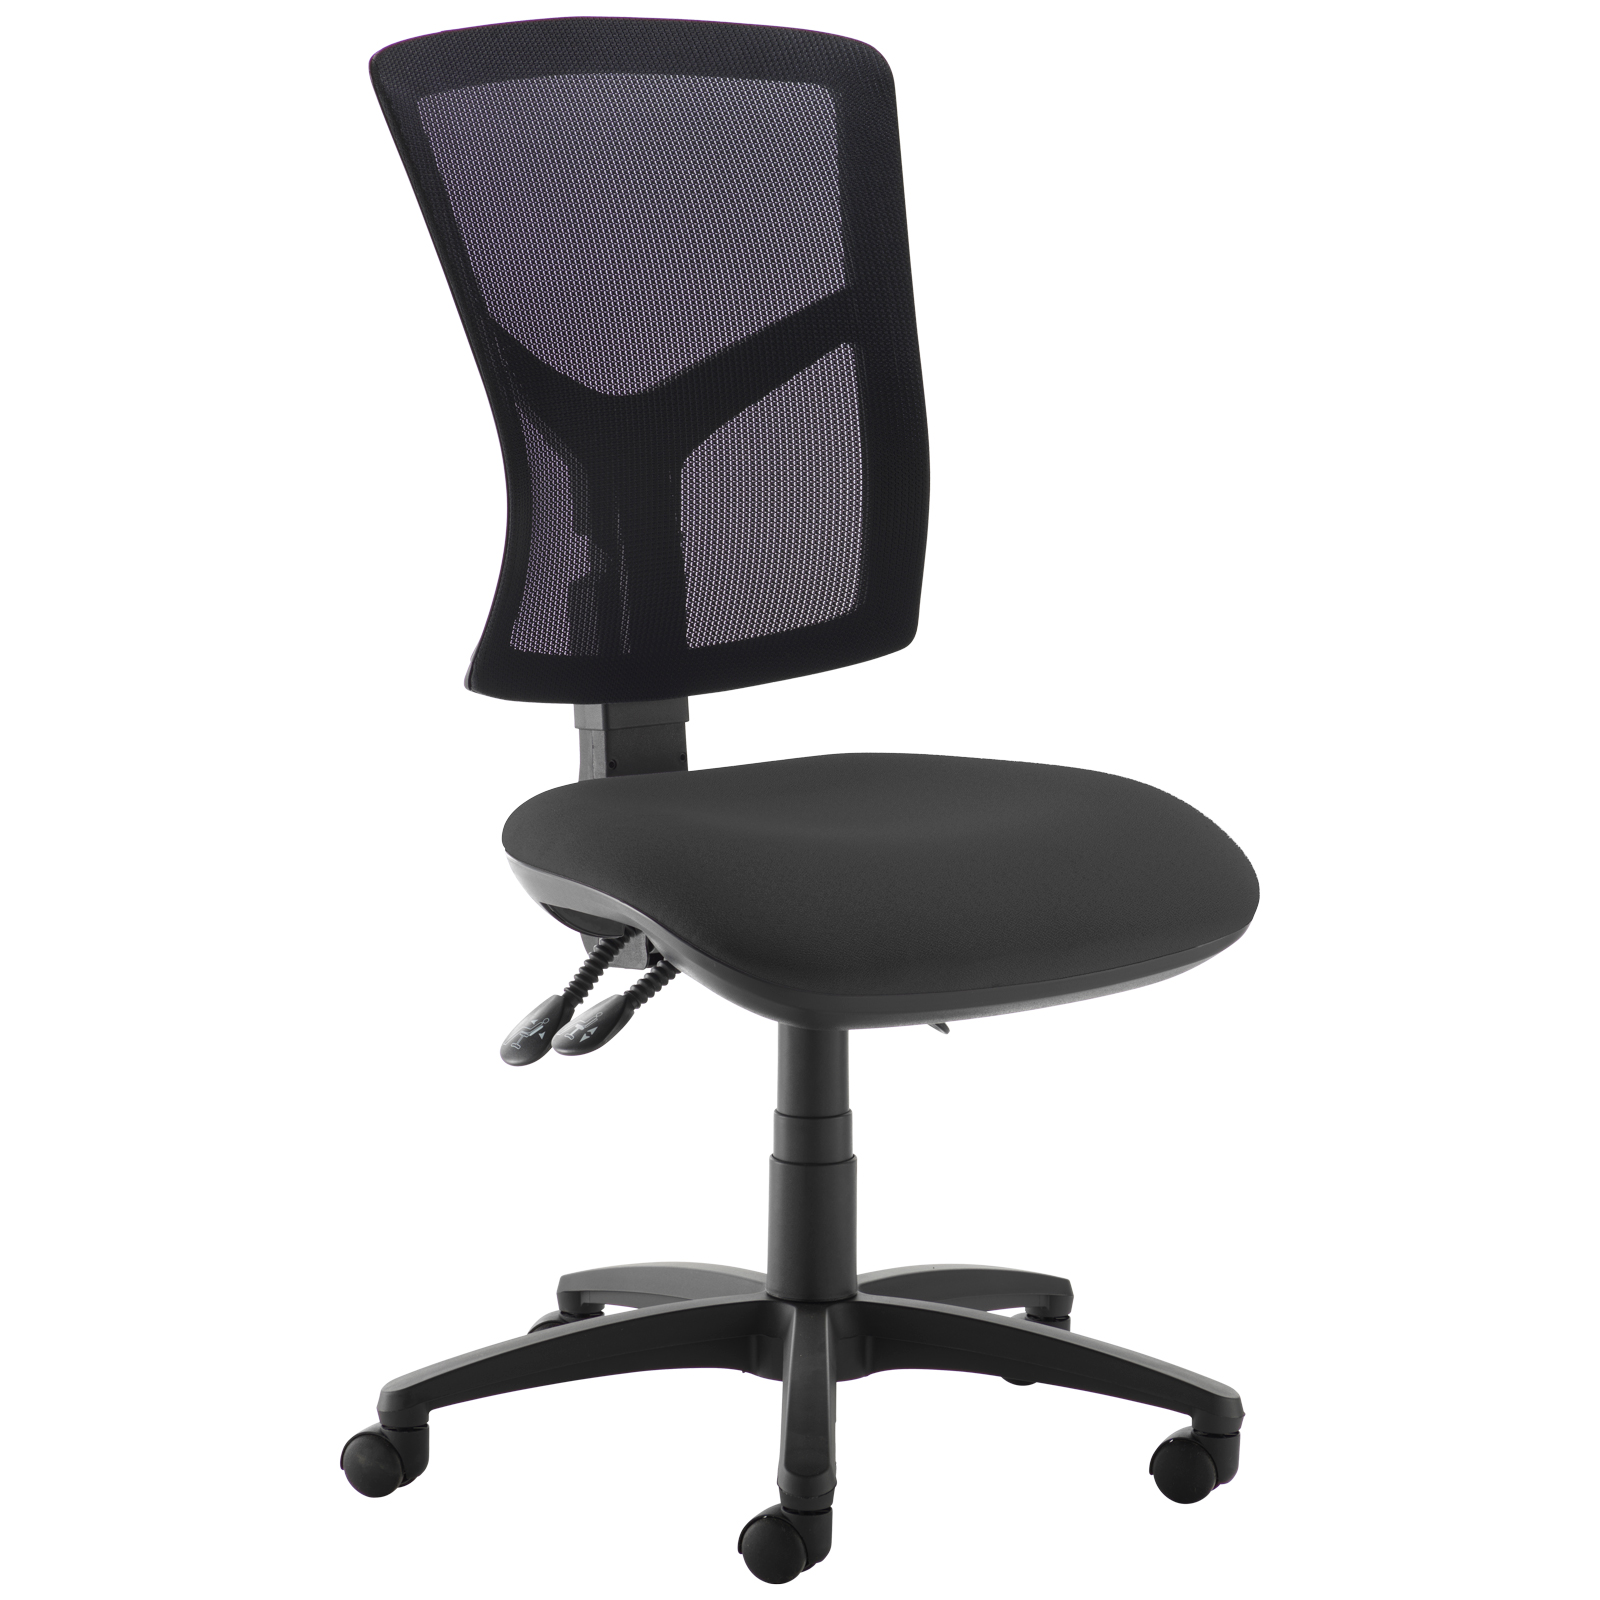 Senza high mesh back operator chair with no arms - black